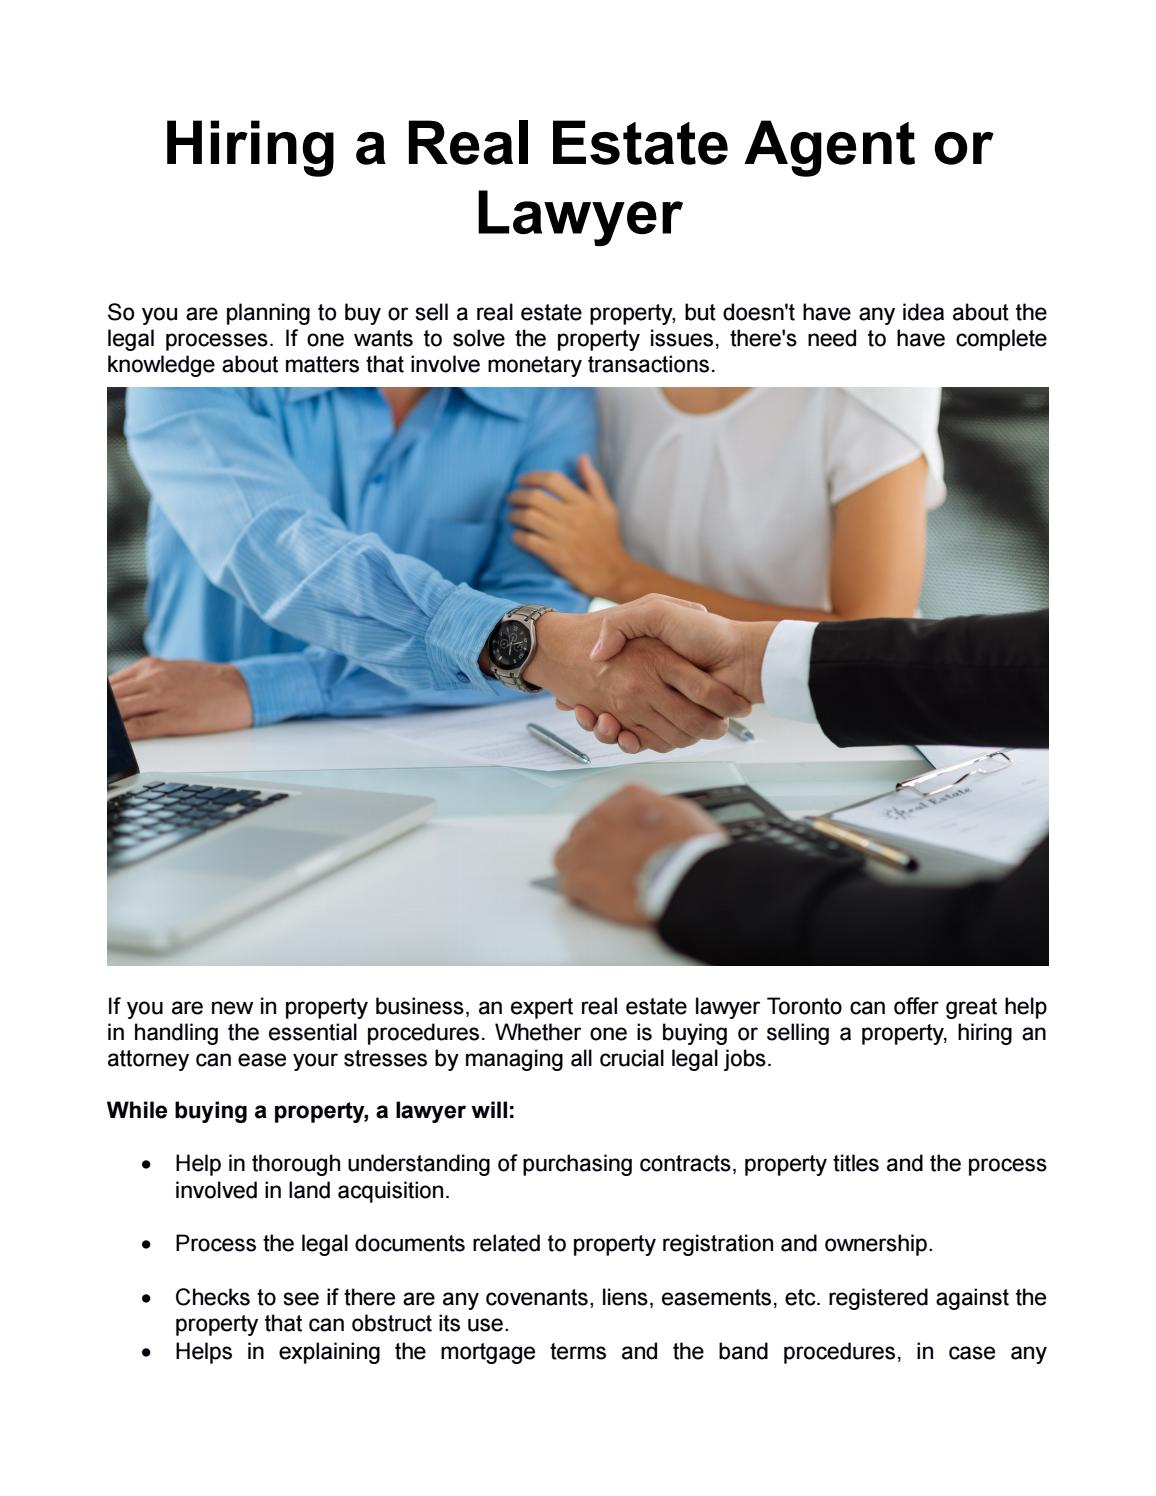 Hiring A Real Estate Agent Or Lawyer By Home Closing Costs Issuu - Real estate legal documents